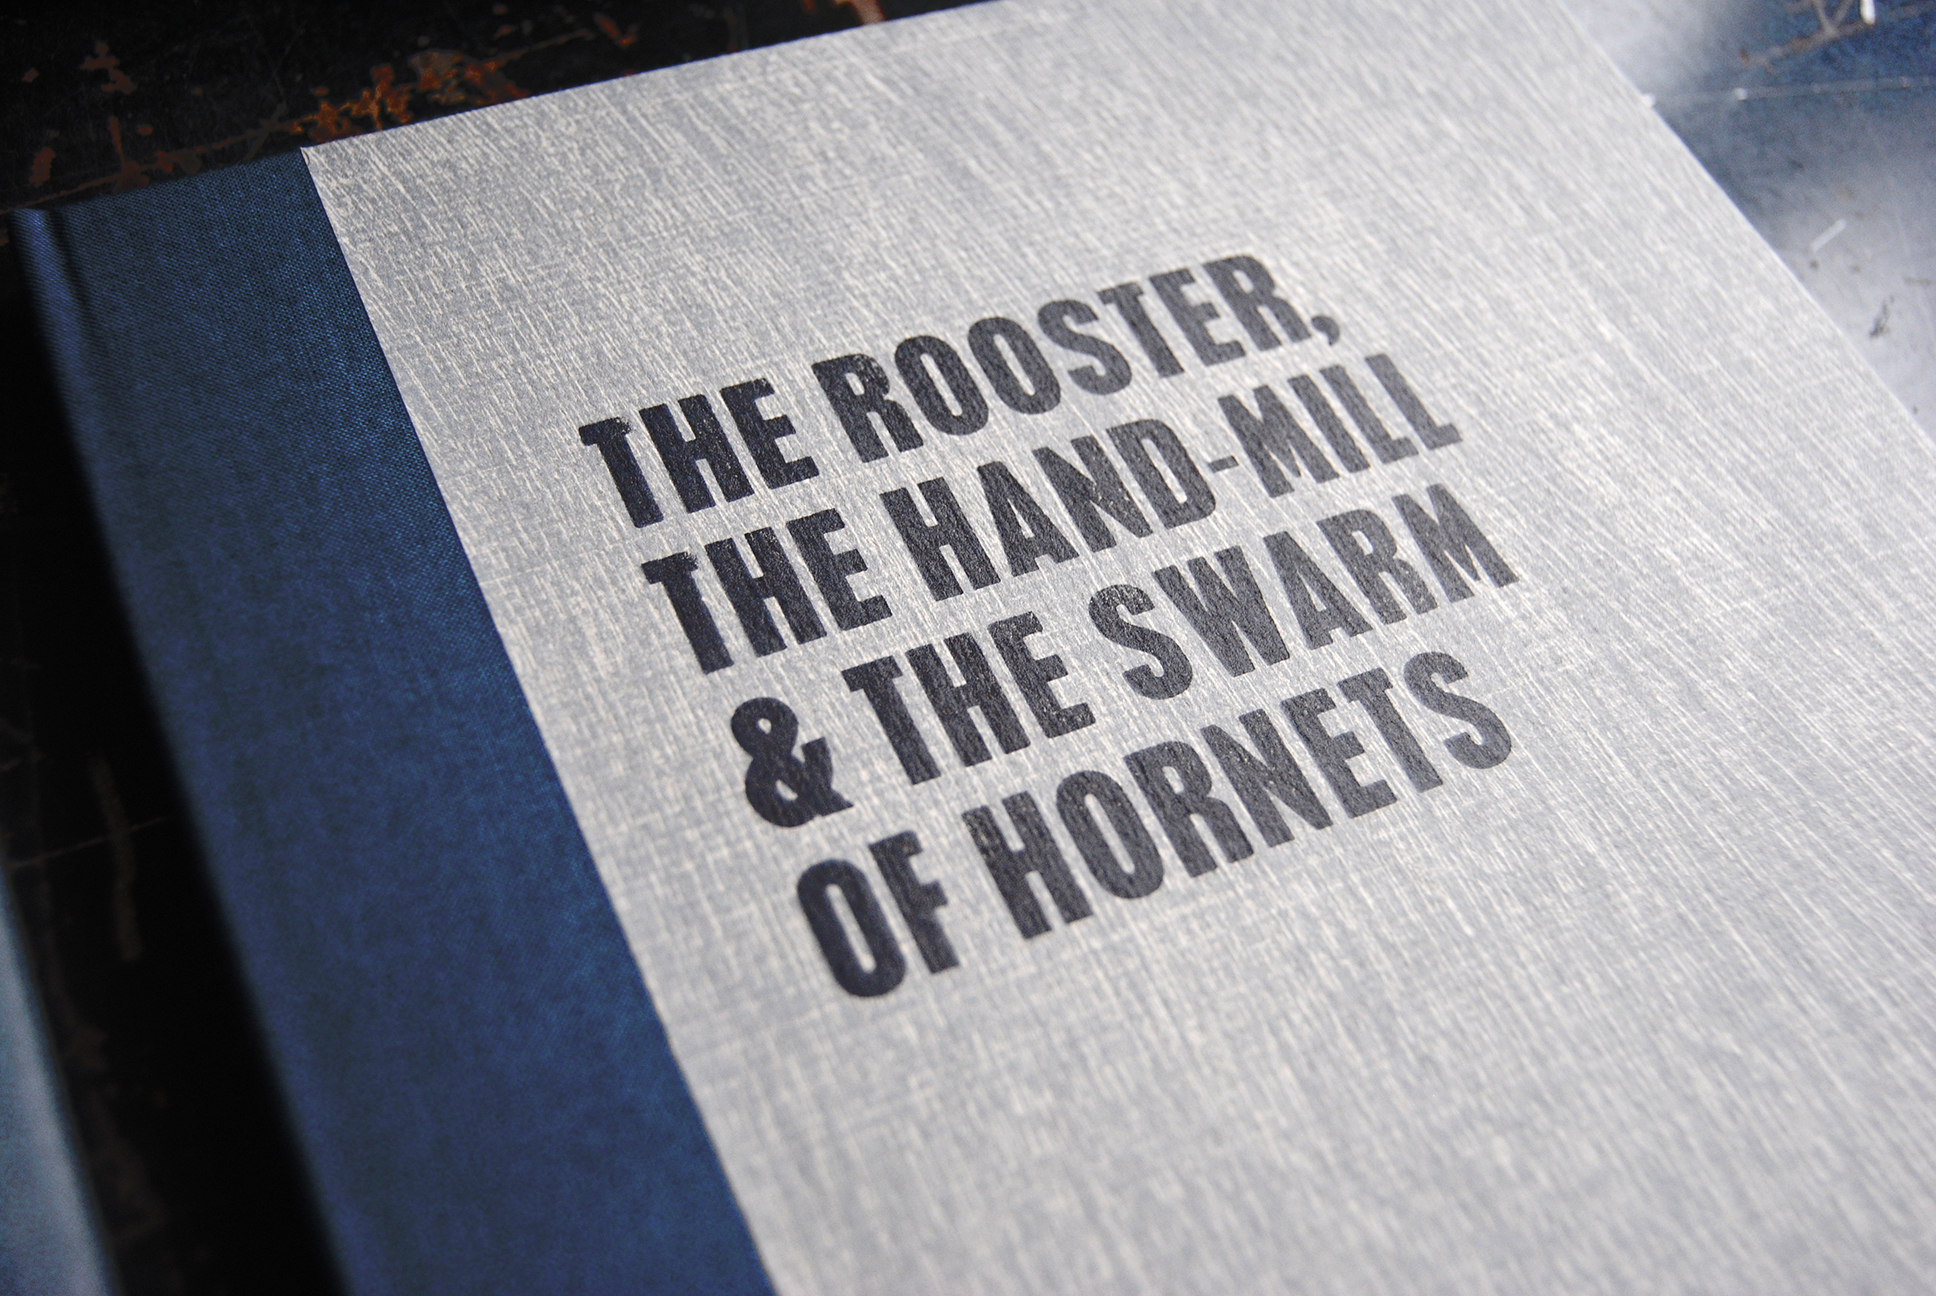 Cover image: The Rooster, The Hand-Mill & The Swarm of Hornets (2014)